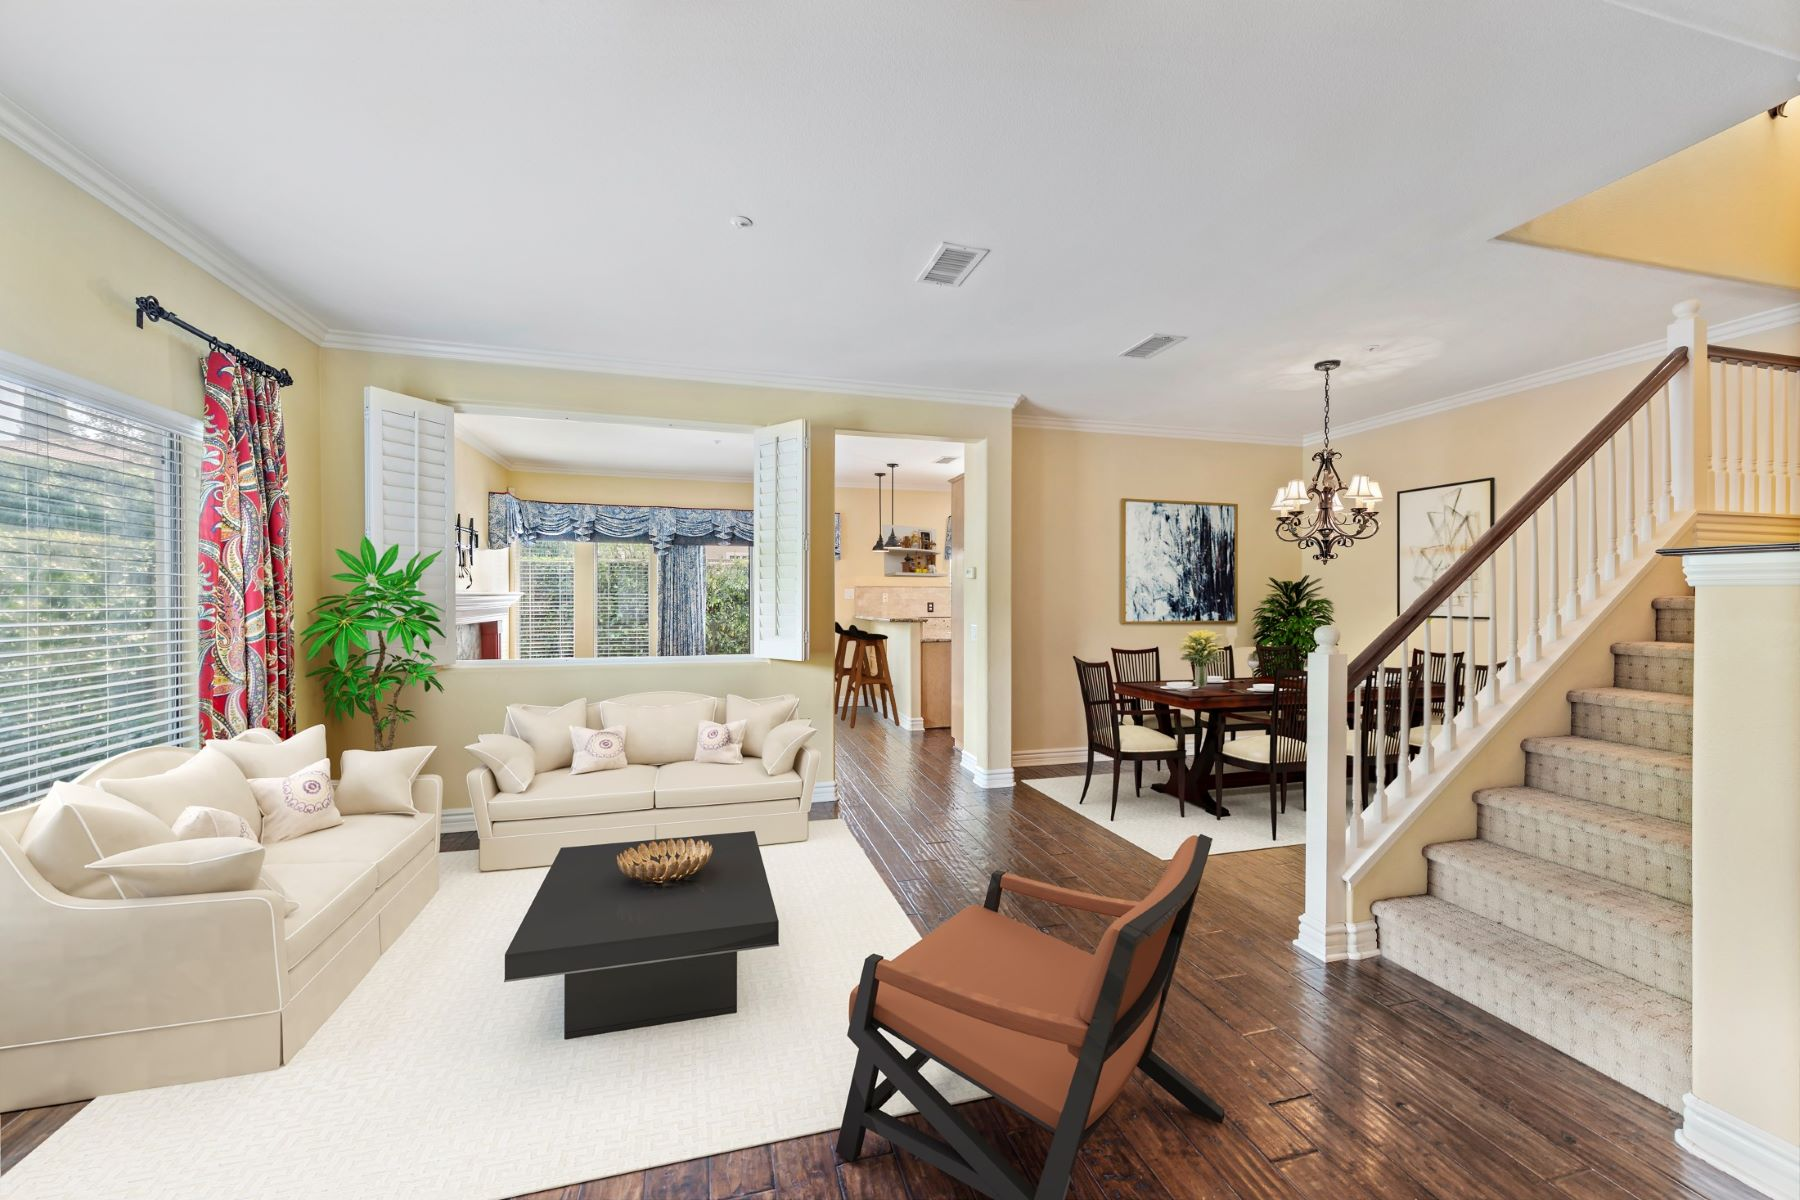 townhouses for Active at 40 Veneto Lane, Aliso Viejo 40 Veneto Lane Aliso Viejo, California 92656 United States